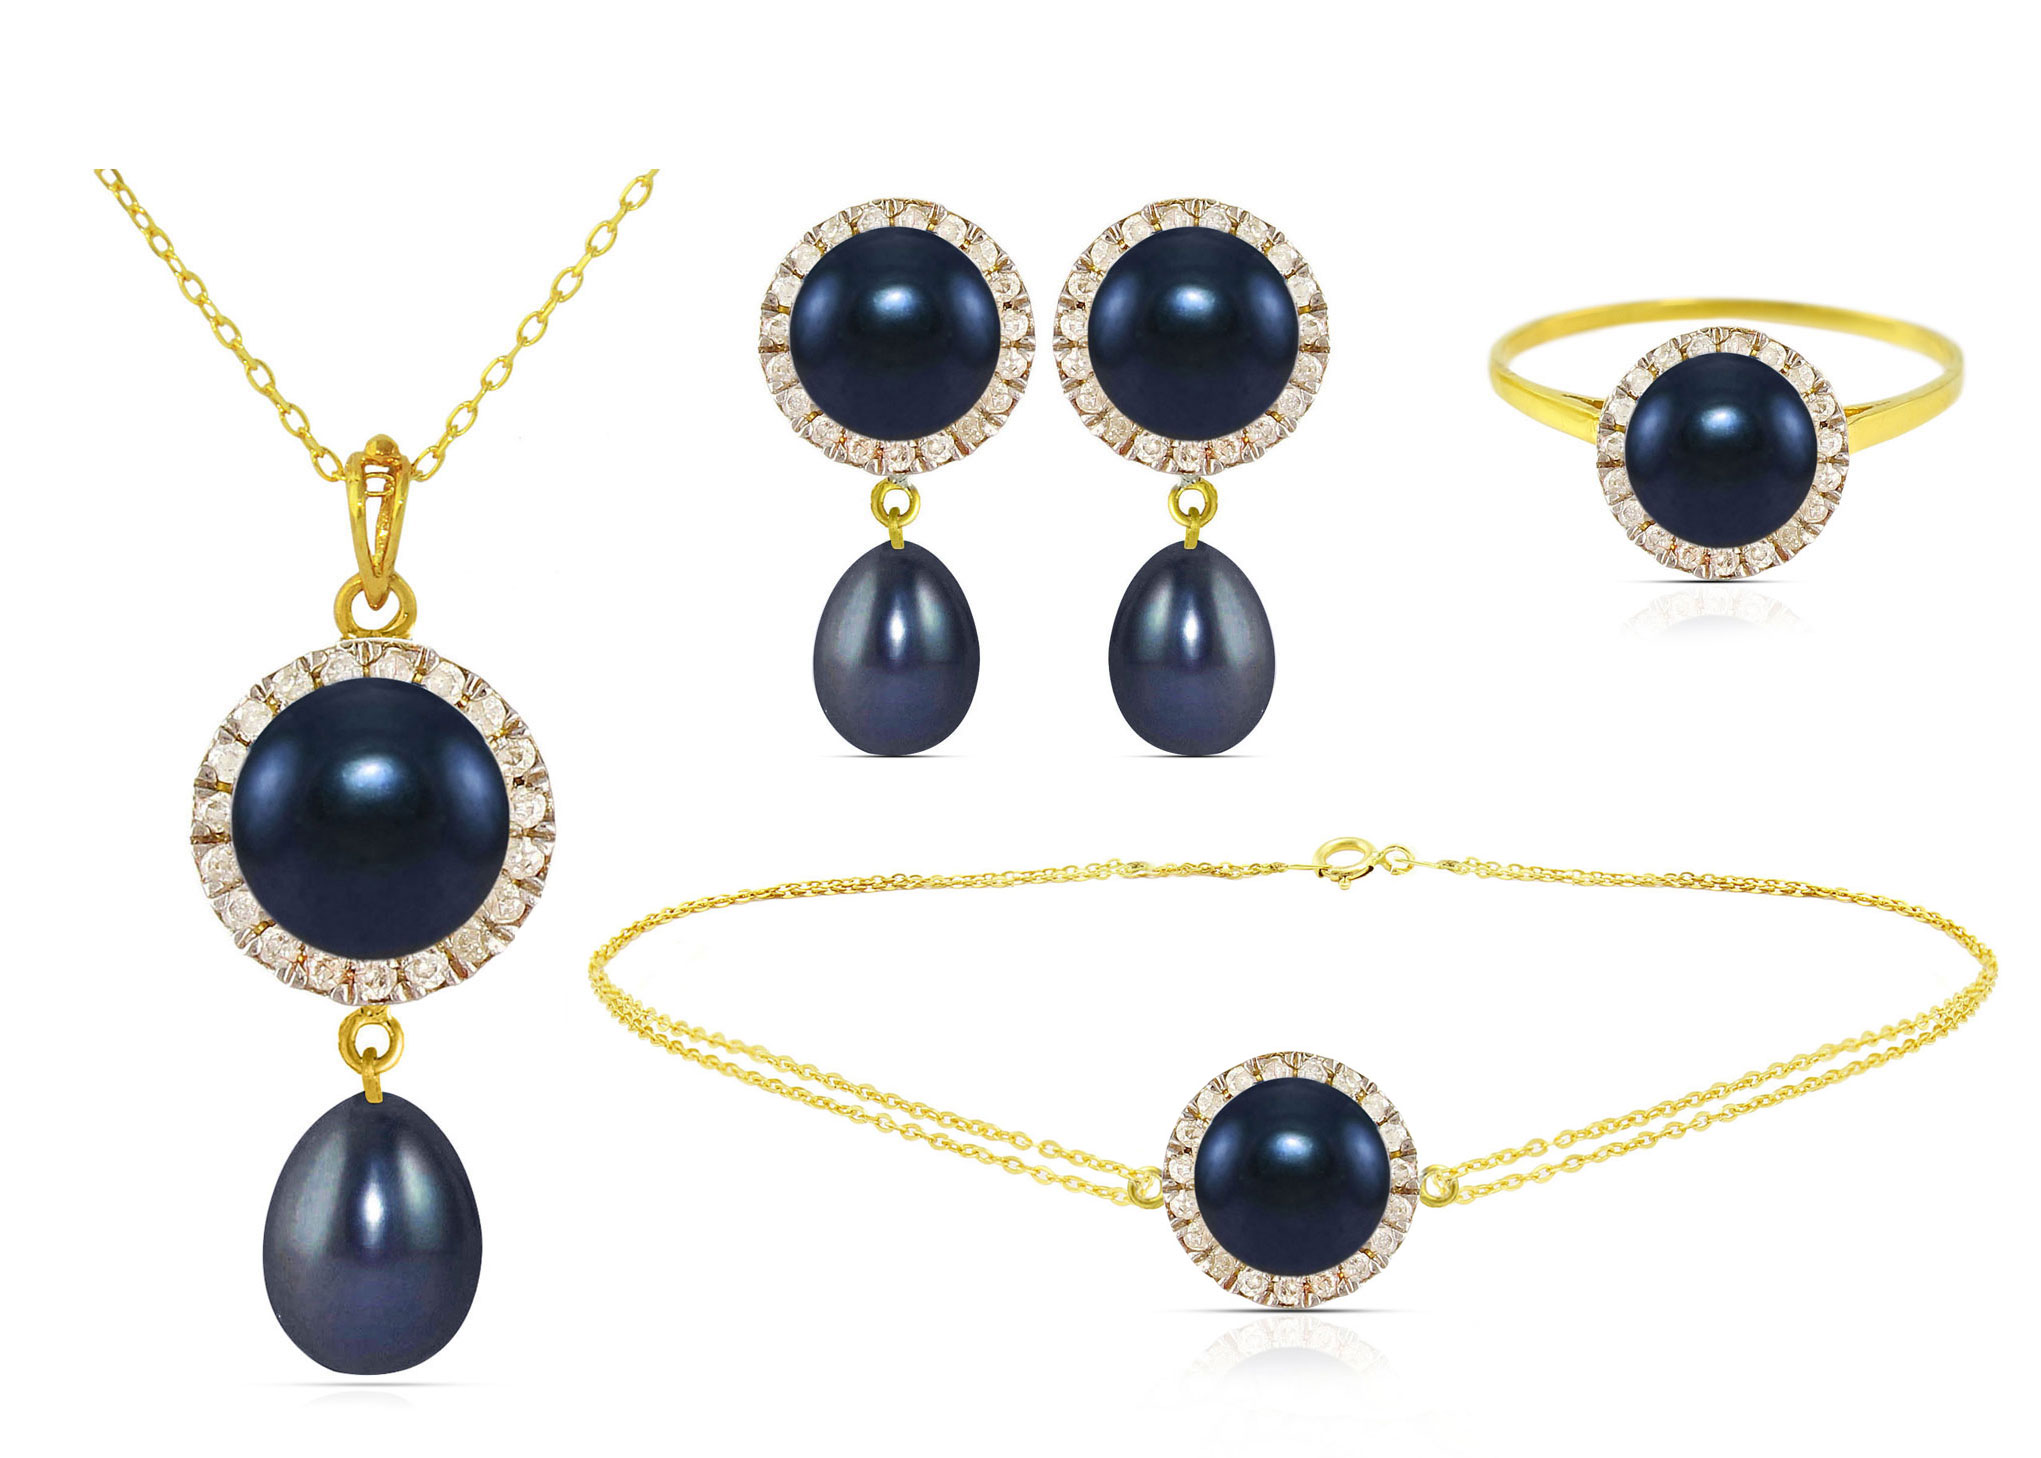 Vera Perla 18K Solid Gold 0.50ct Genuine Diamonds and 6-7mm Black Pearl Jewelry Set,  4 Pcs